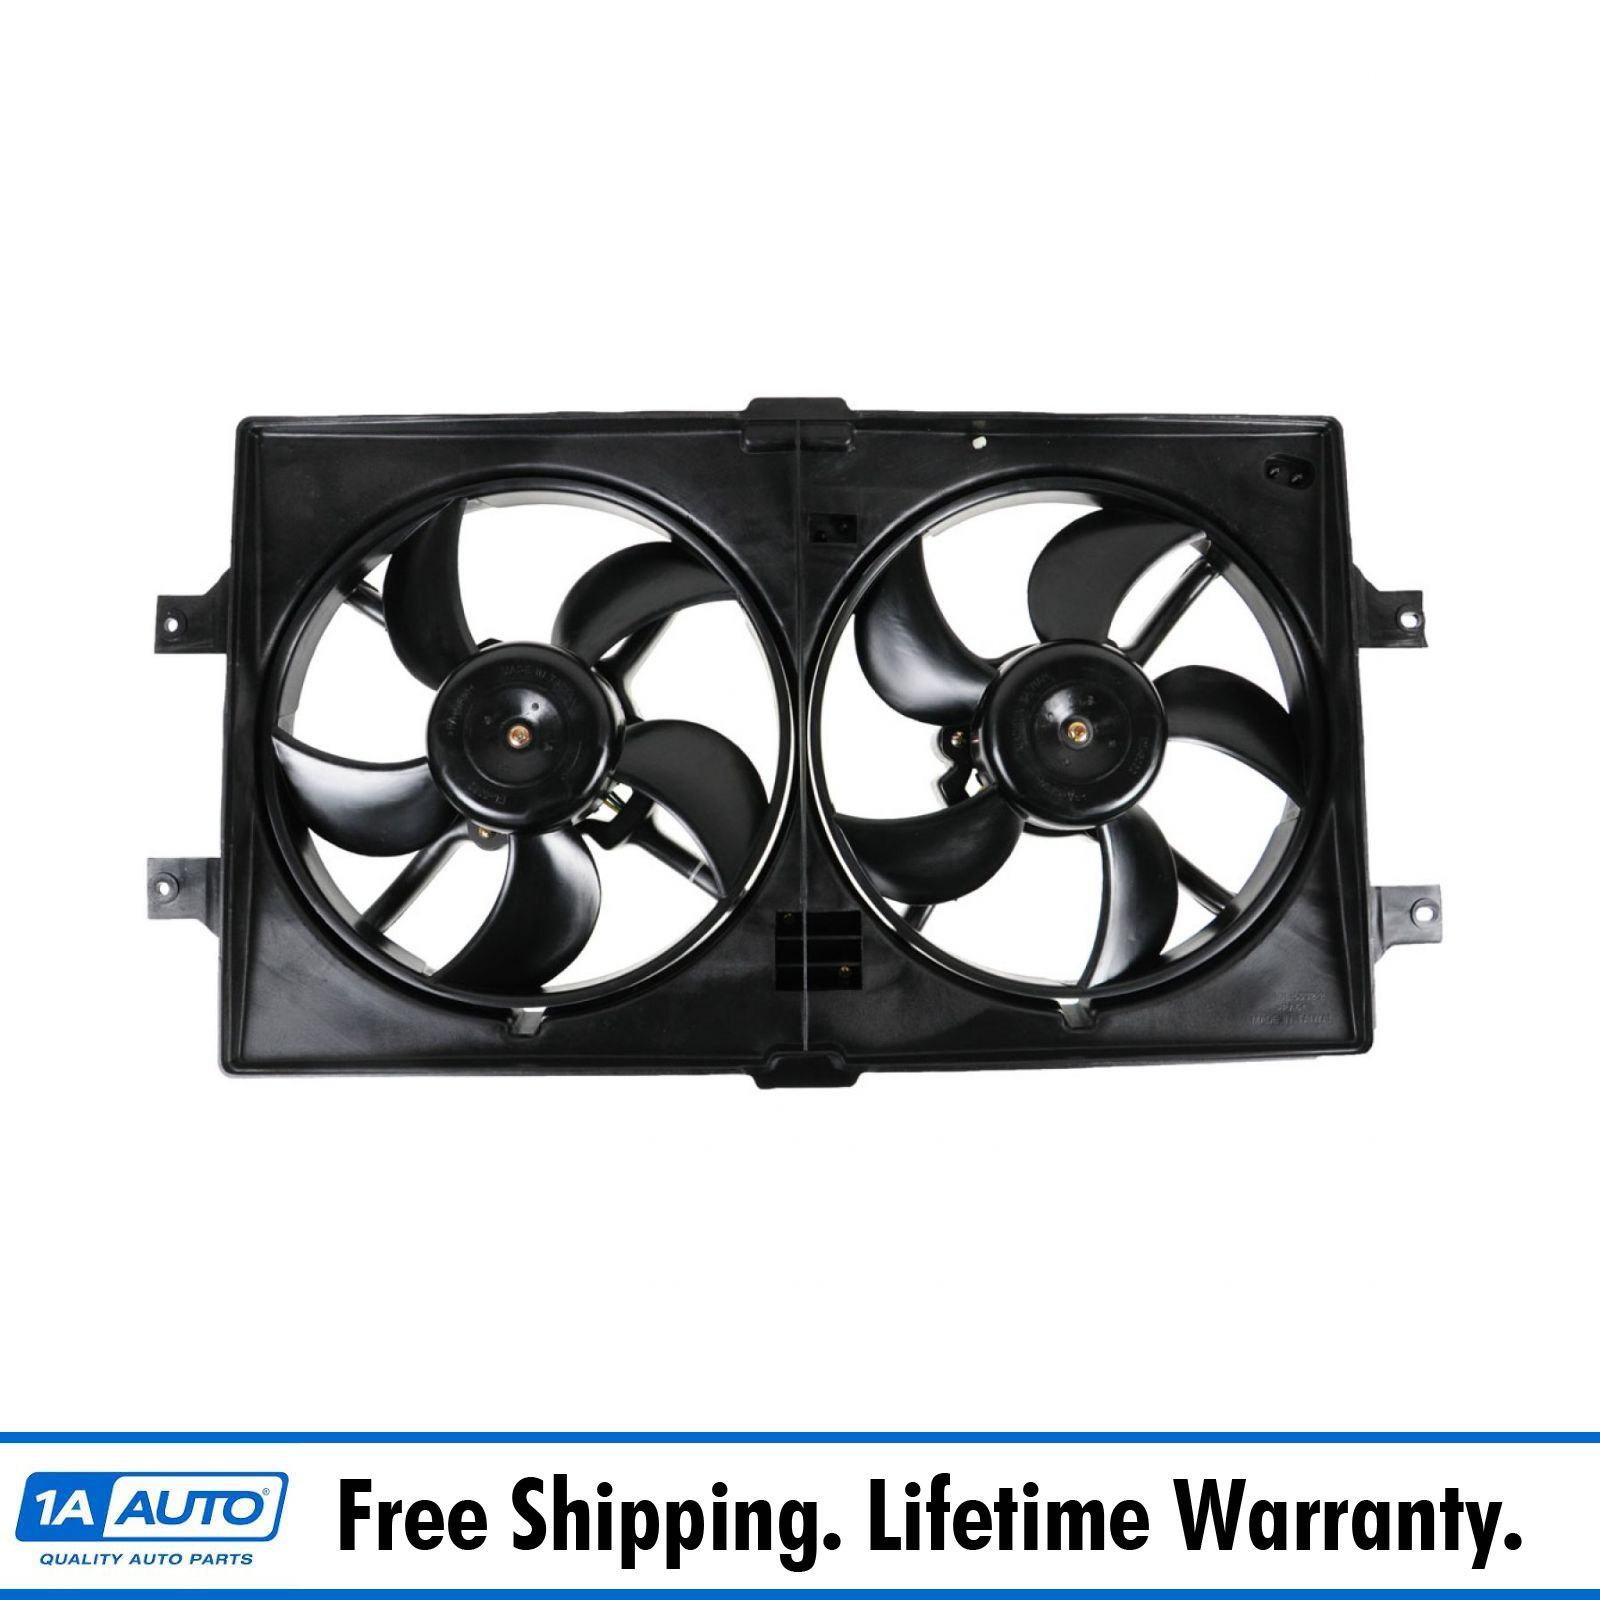 Radiator Cooling Fan /& Motor Assembly for Chrysler 300M Concorde Dodge Intrepid